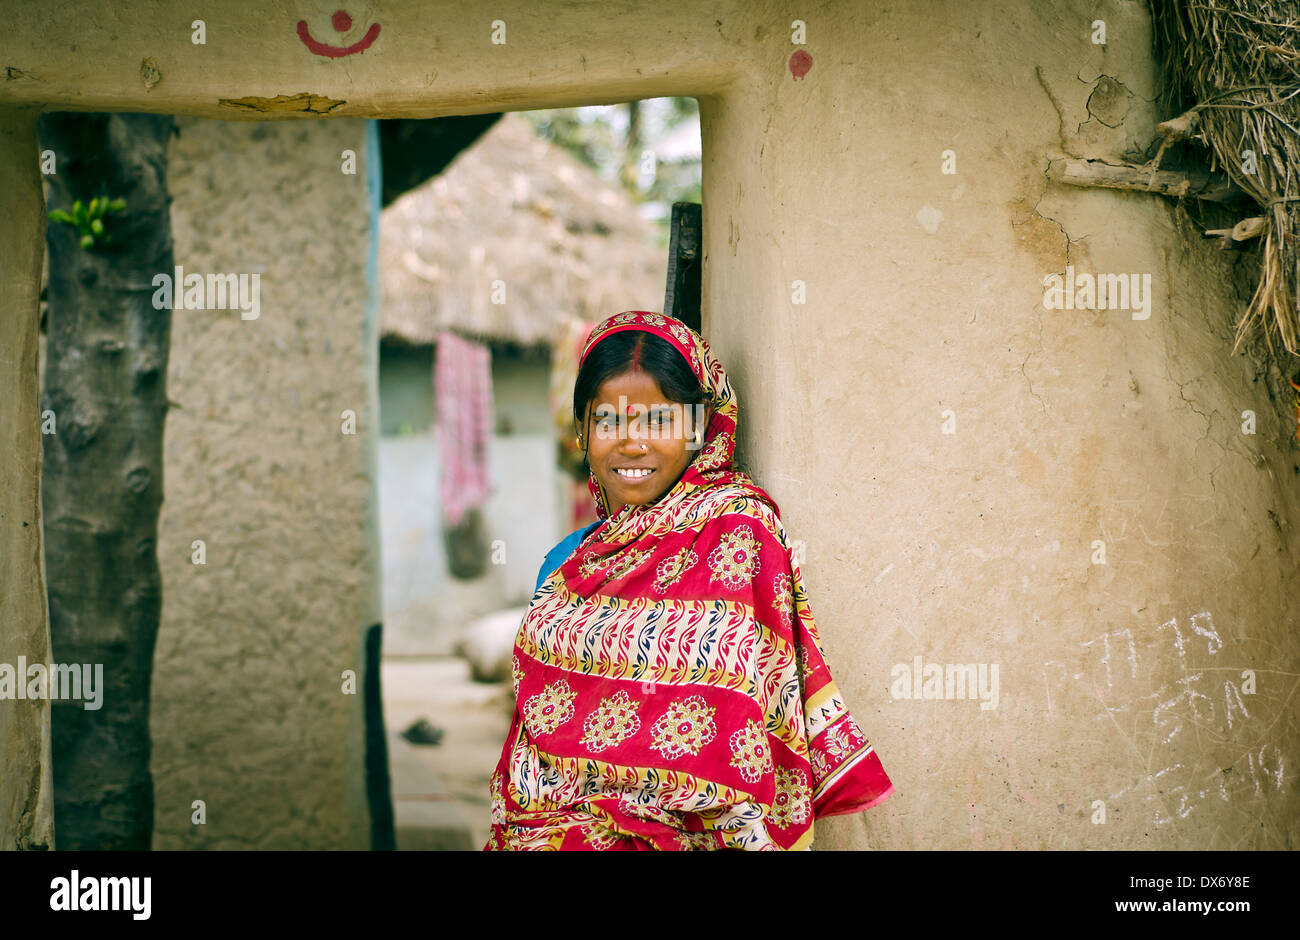 indian village woman stock photos & indian village woman stock